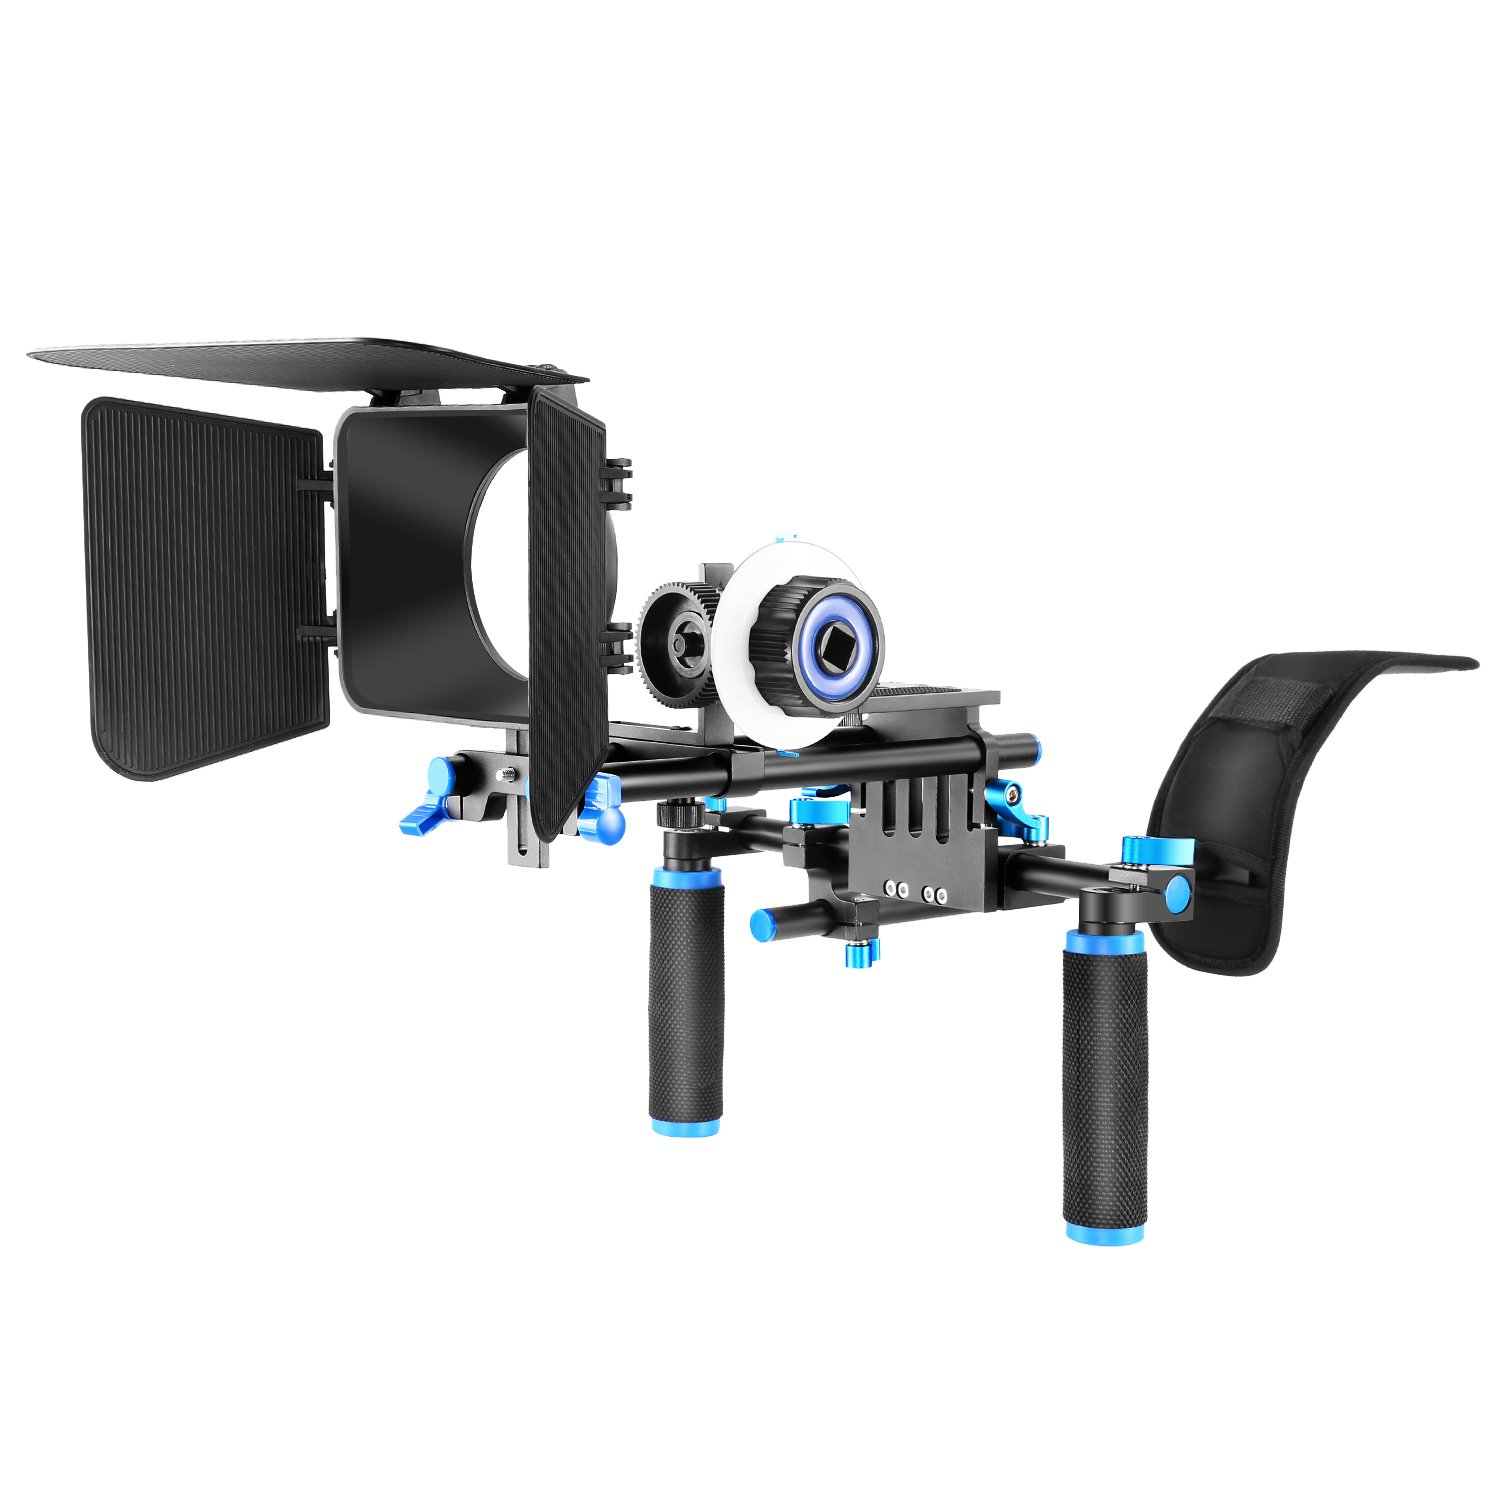 Neewer Film Movie Video Making System Kit for DSLR Cameras Video Camcorders,includes:Shoulder Mount,15mm Rod,Follow Focus,Matte Box(Blue) by Neewer